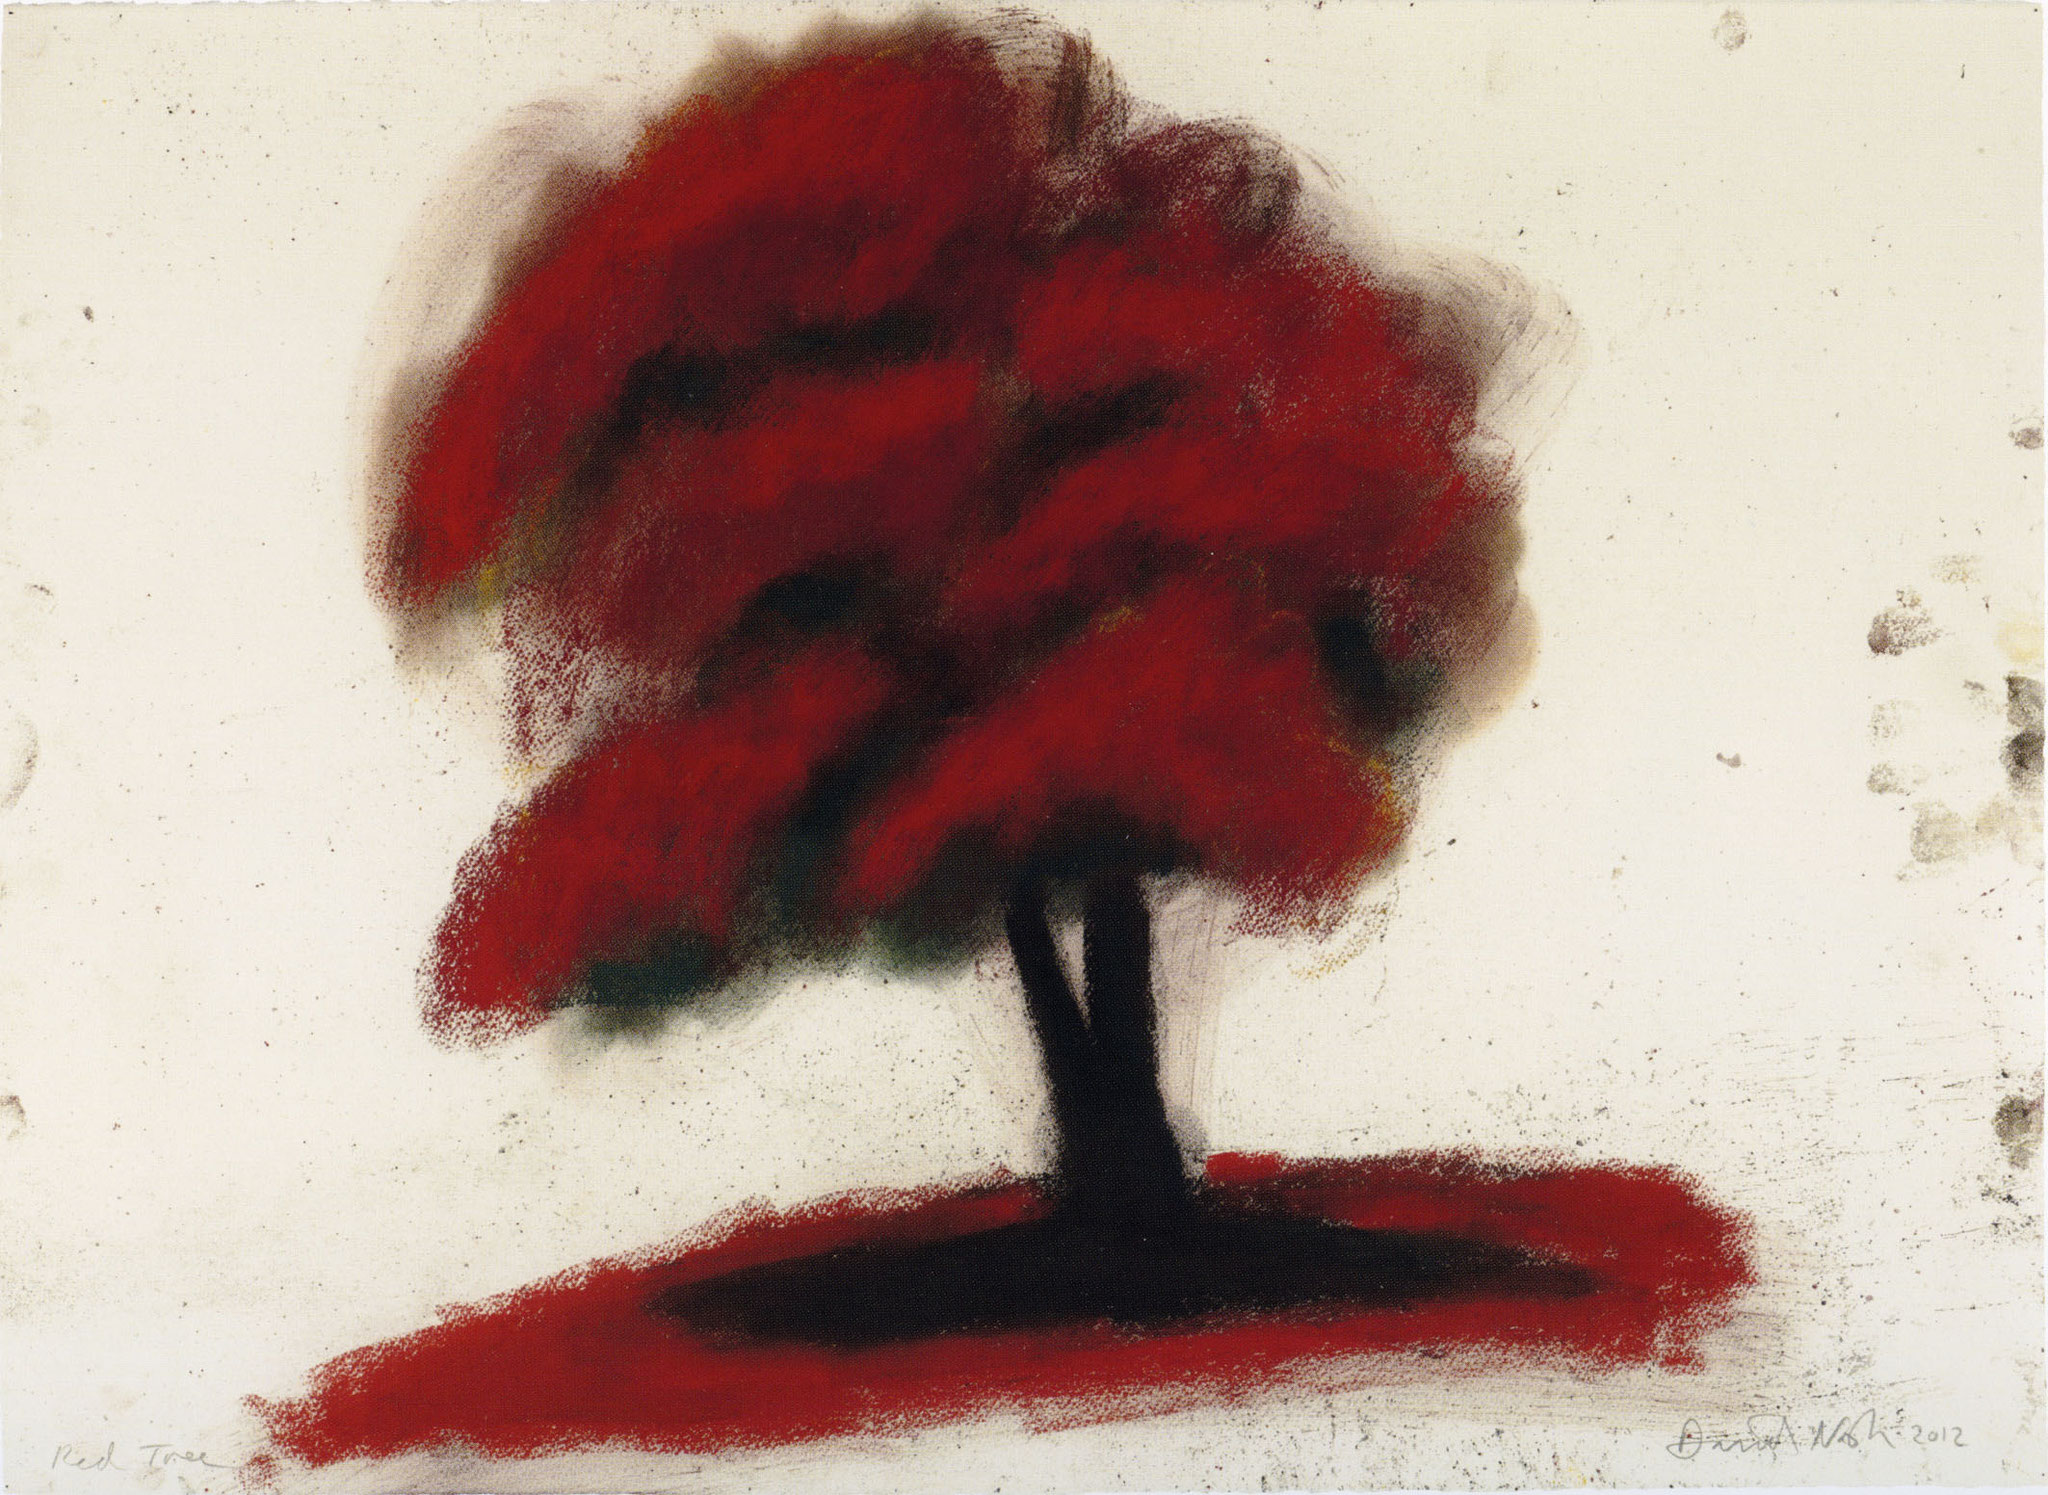 David Nash  Red Tree, 2012  Pastell auf Papier